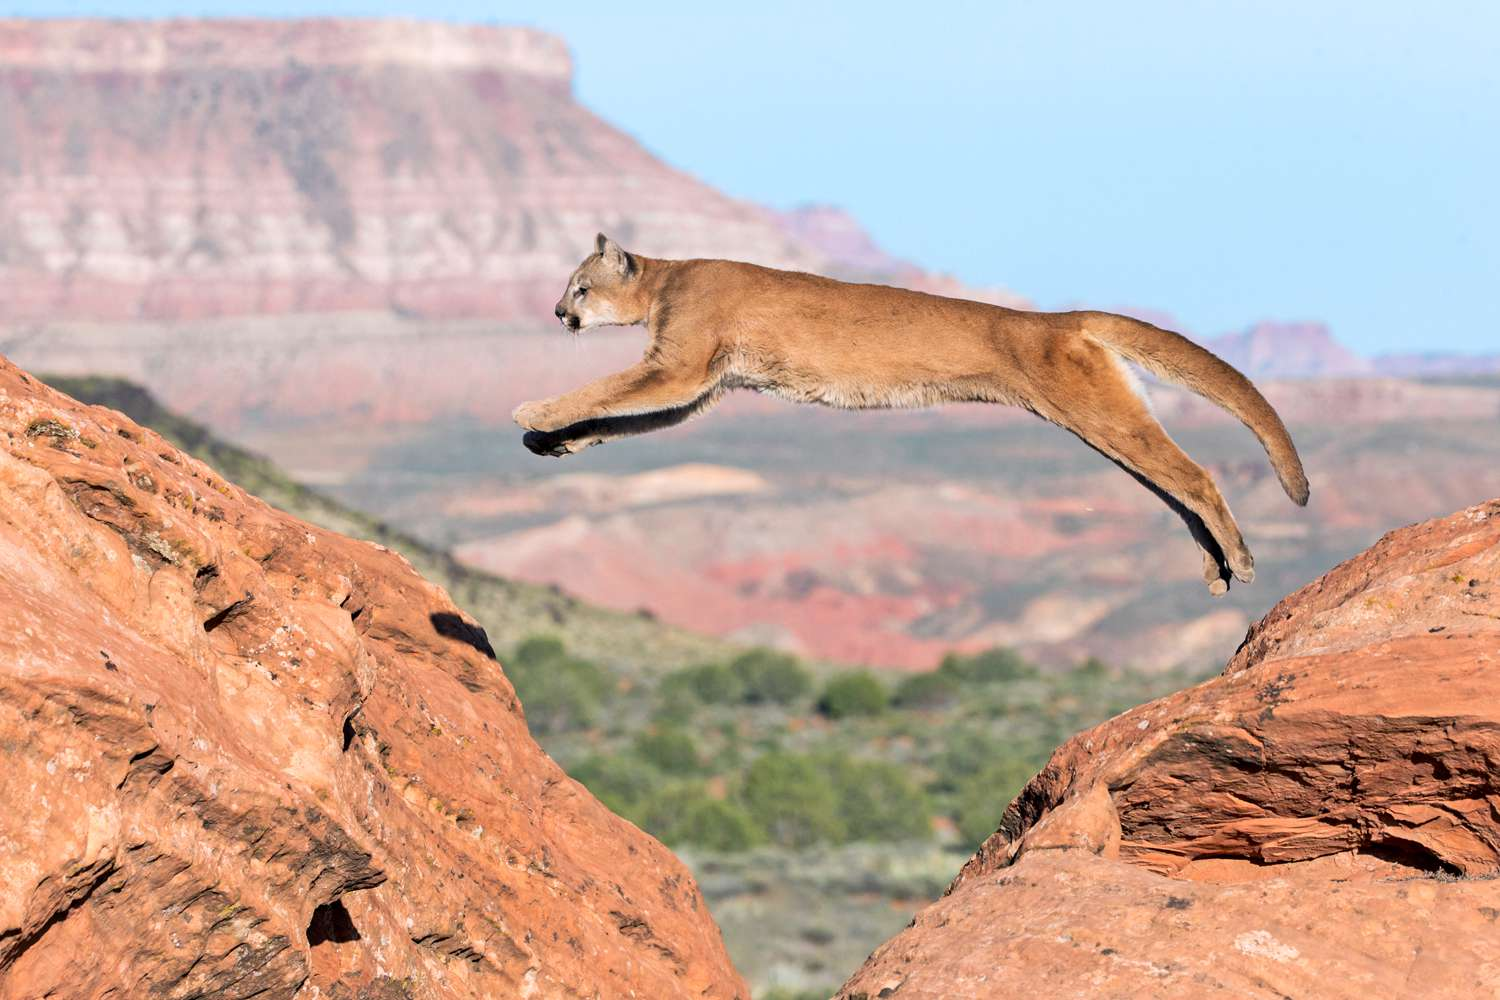 A mountain lion jumping